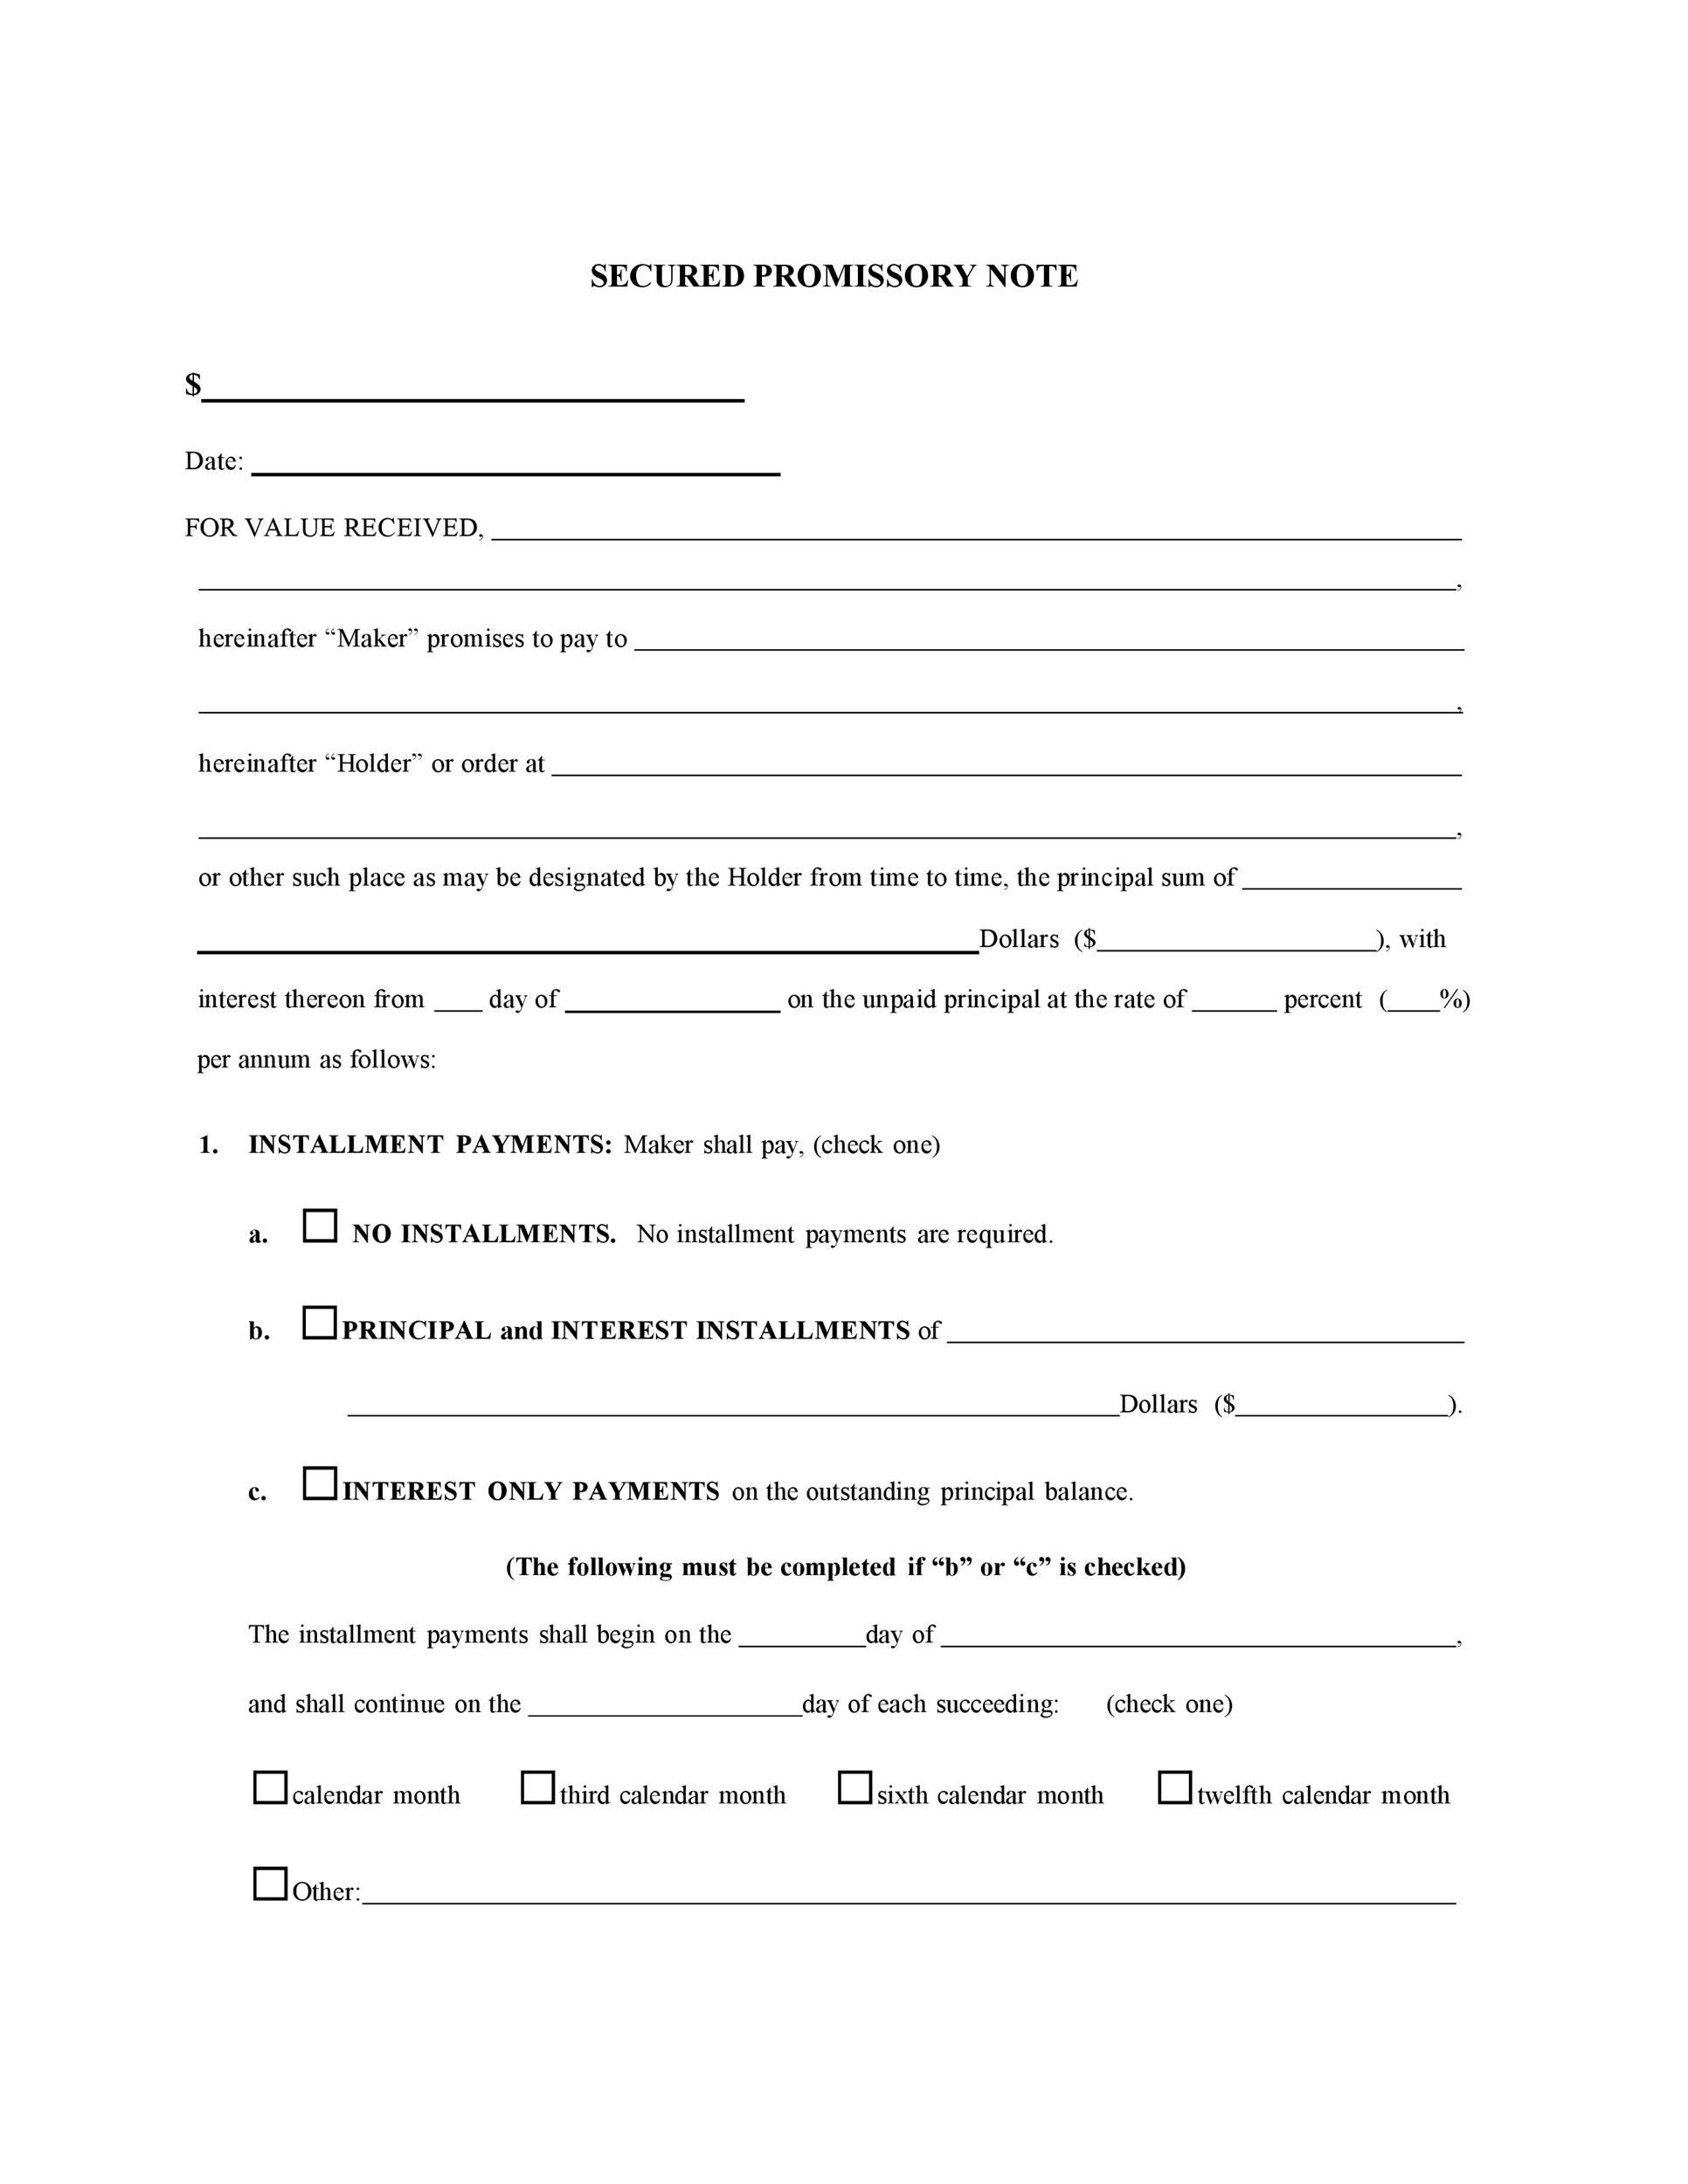 006 Unusual Blank Promissory Note Template High Definition  Form Free DownloadFull